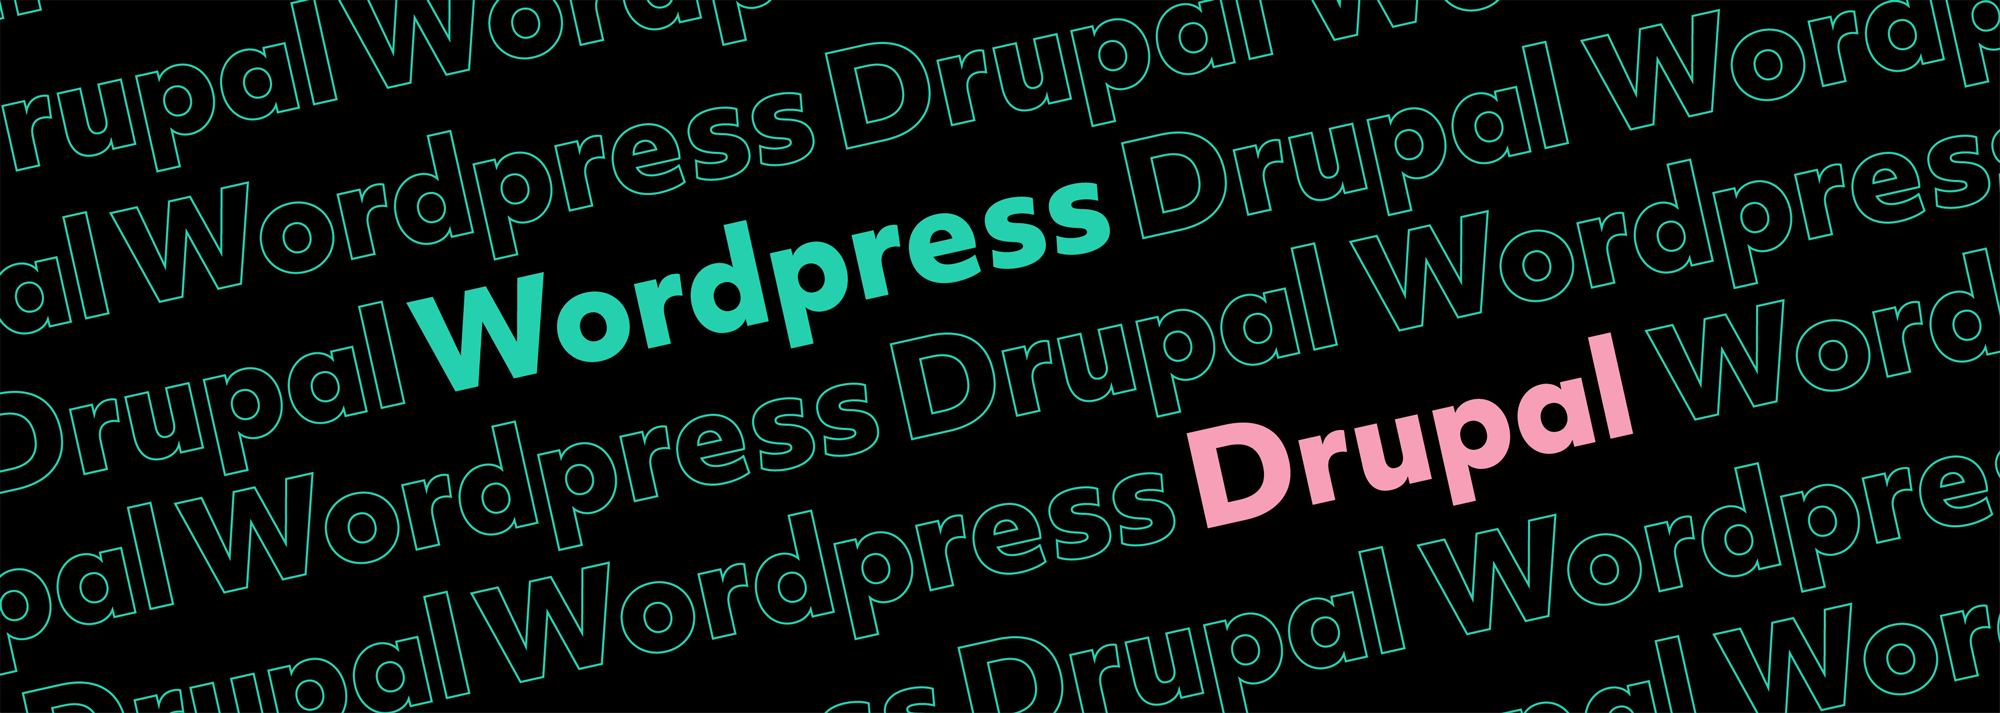 drupal vs wordpress brand development featured